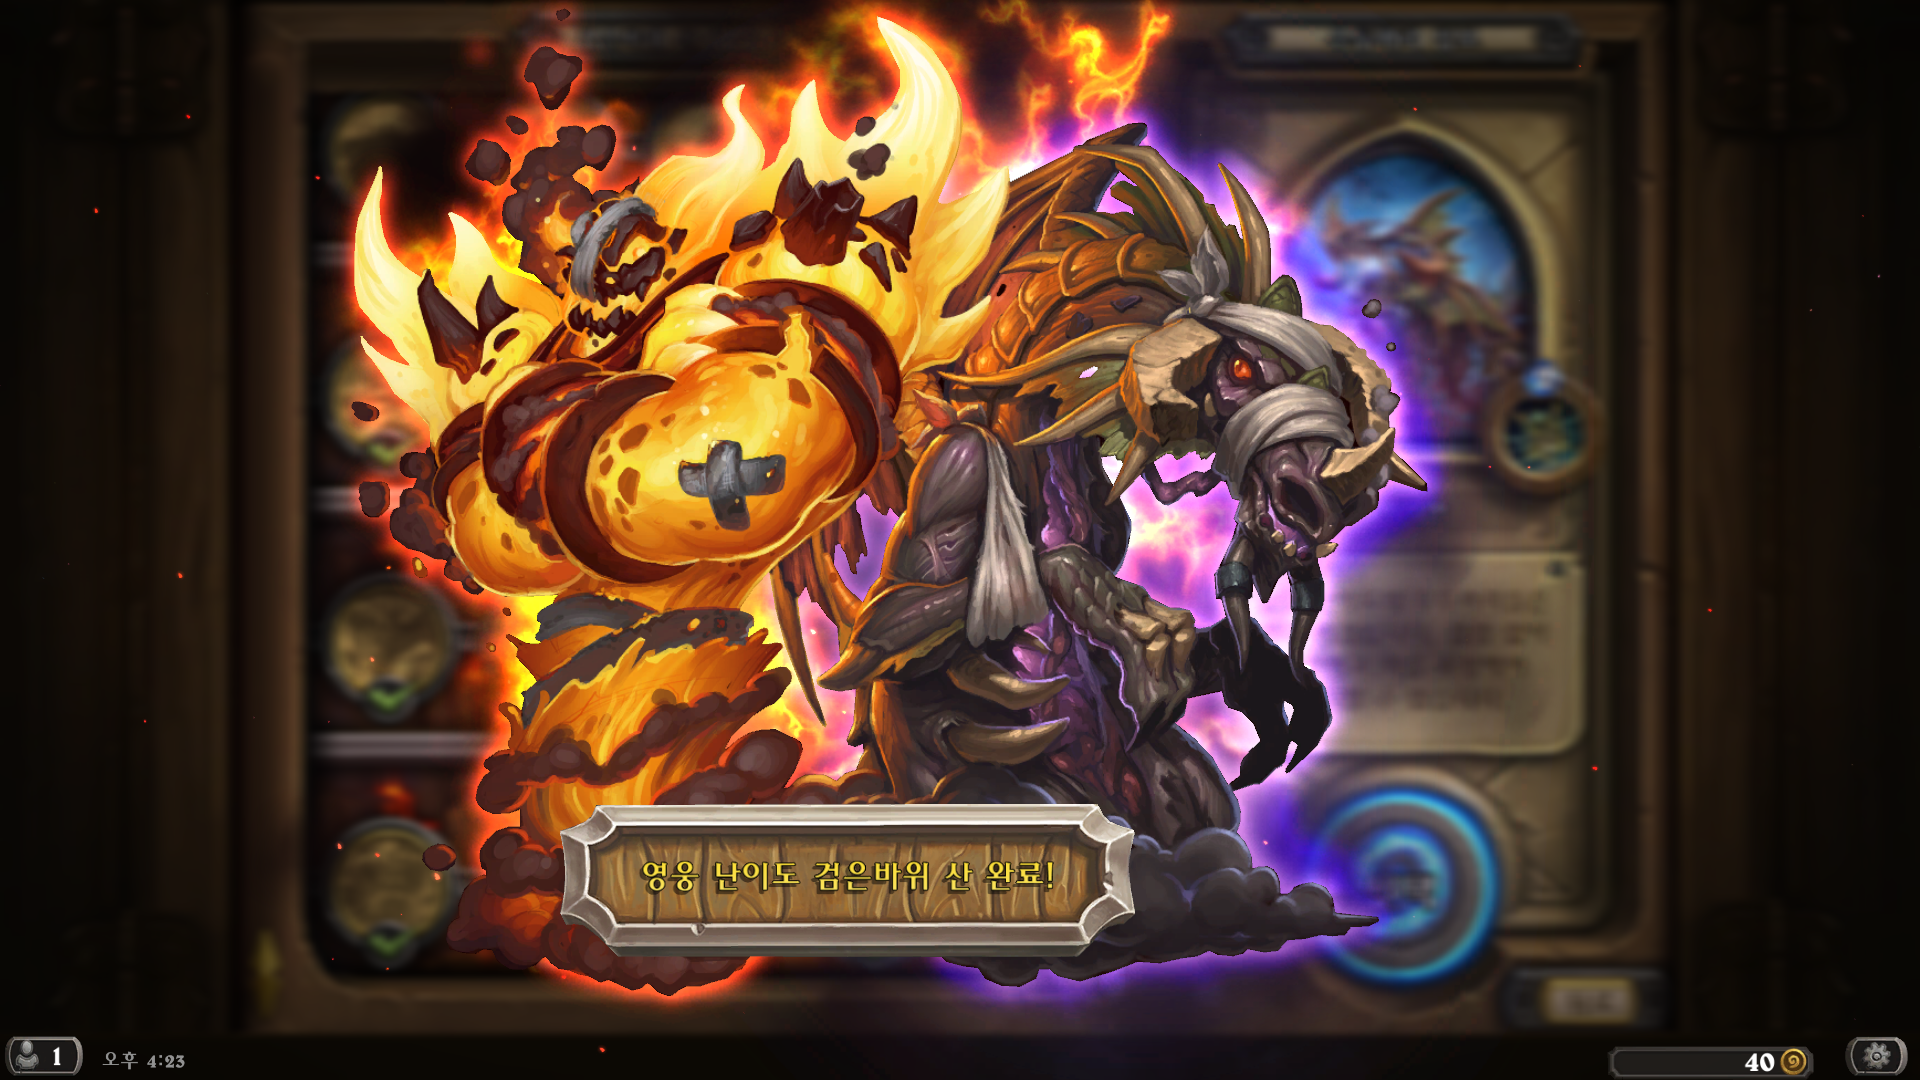 Hearthstone Screenshot 05-01-15 16.23.18.png